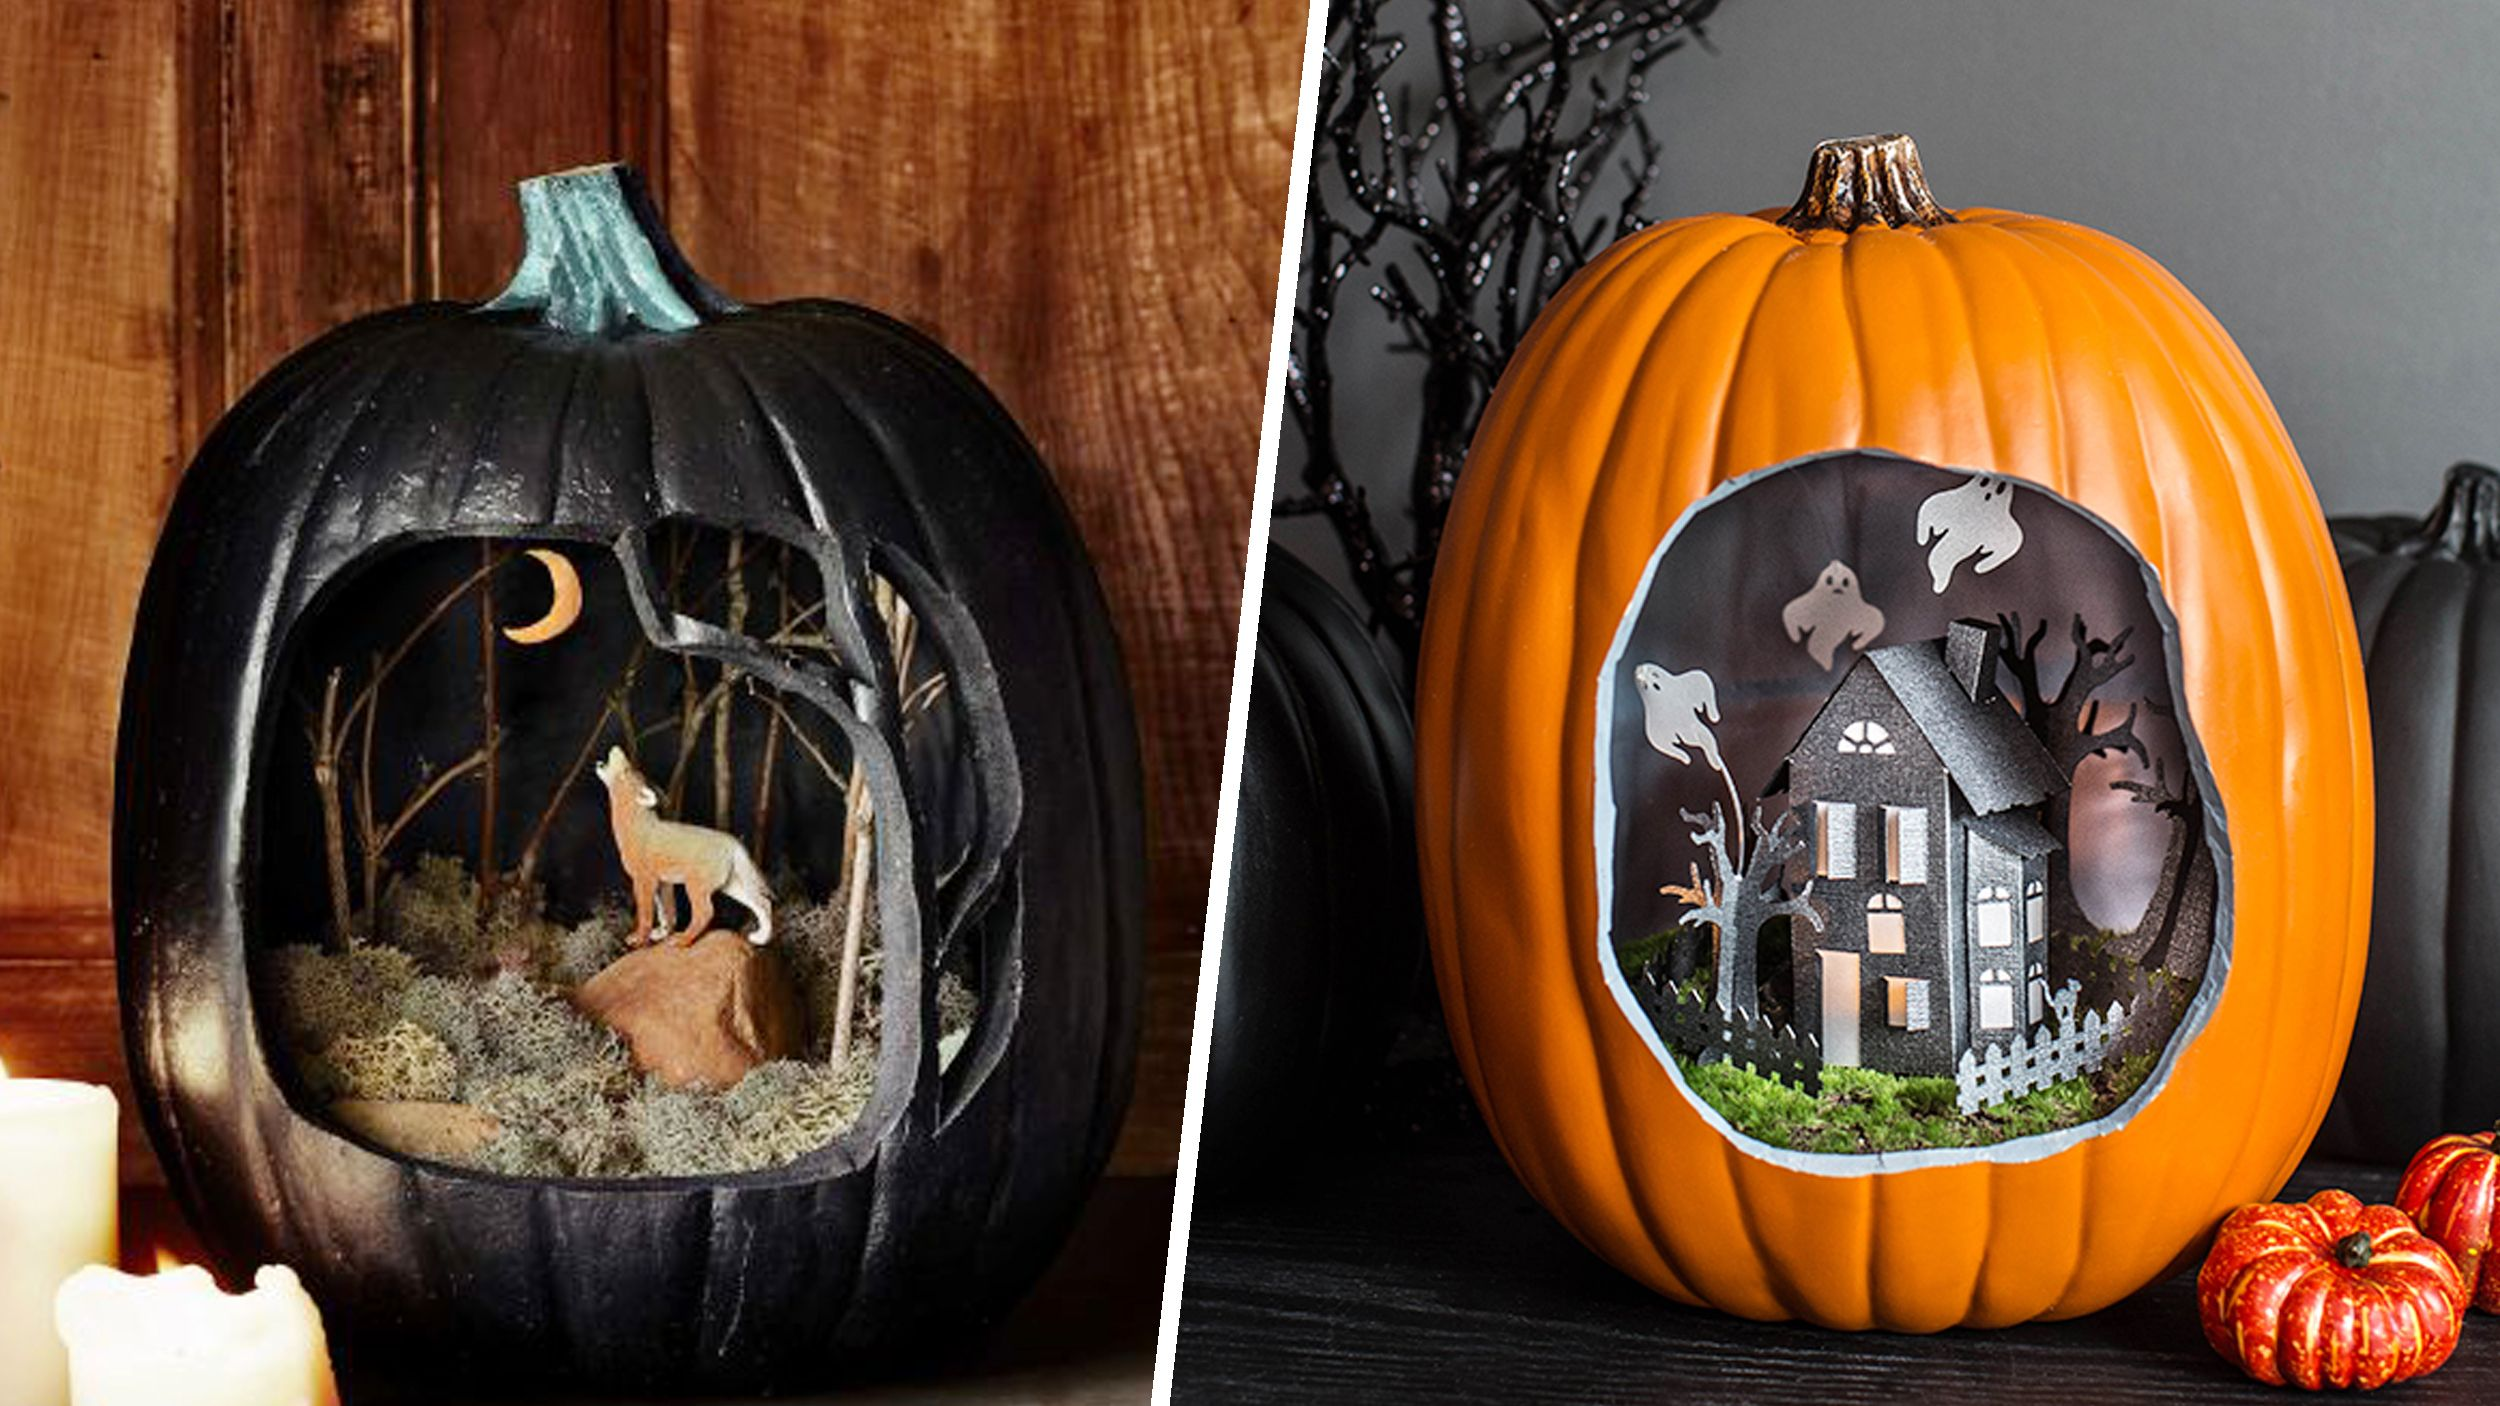 pumpkins! This new Halloween trend will take you on